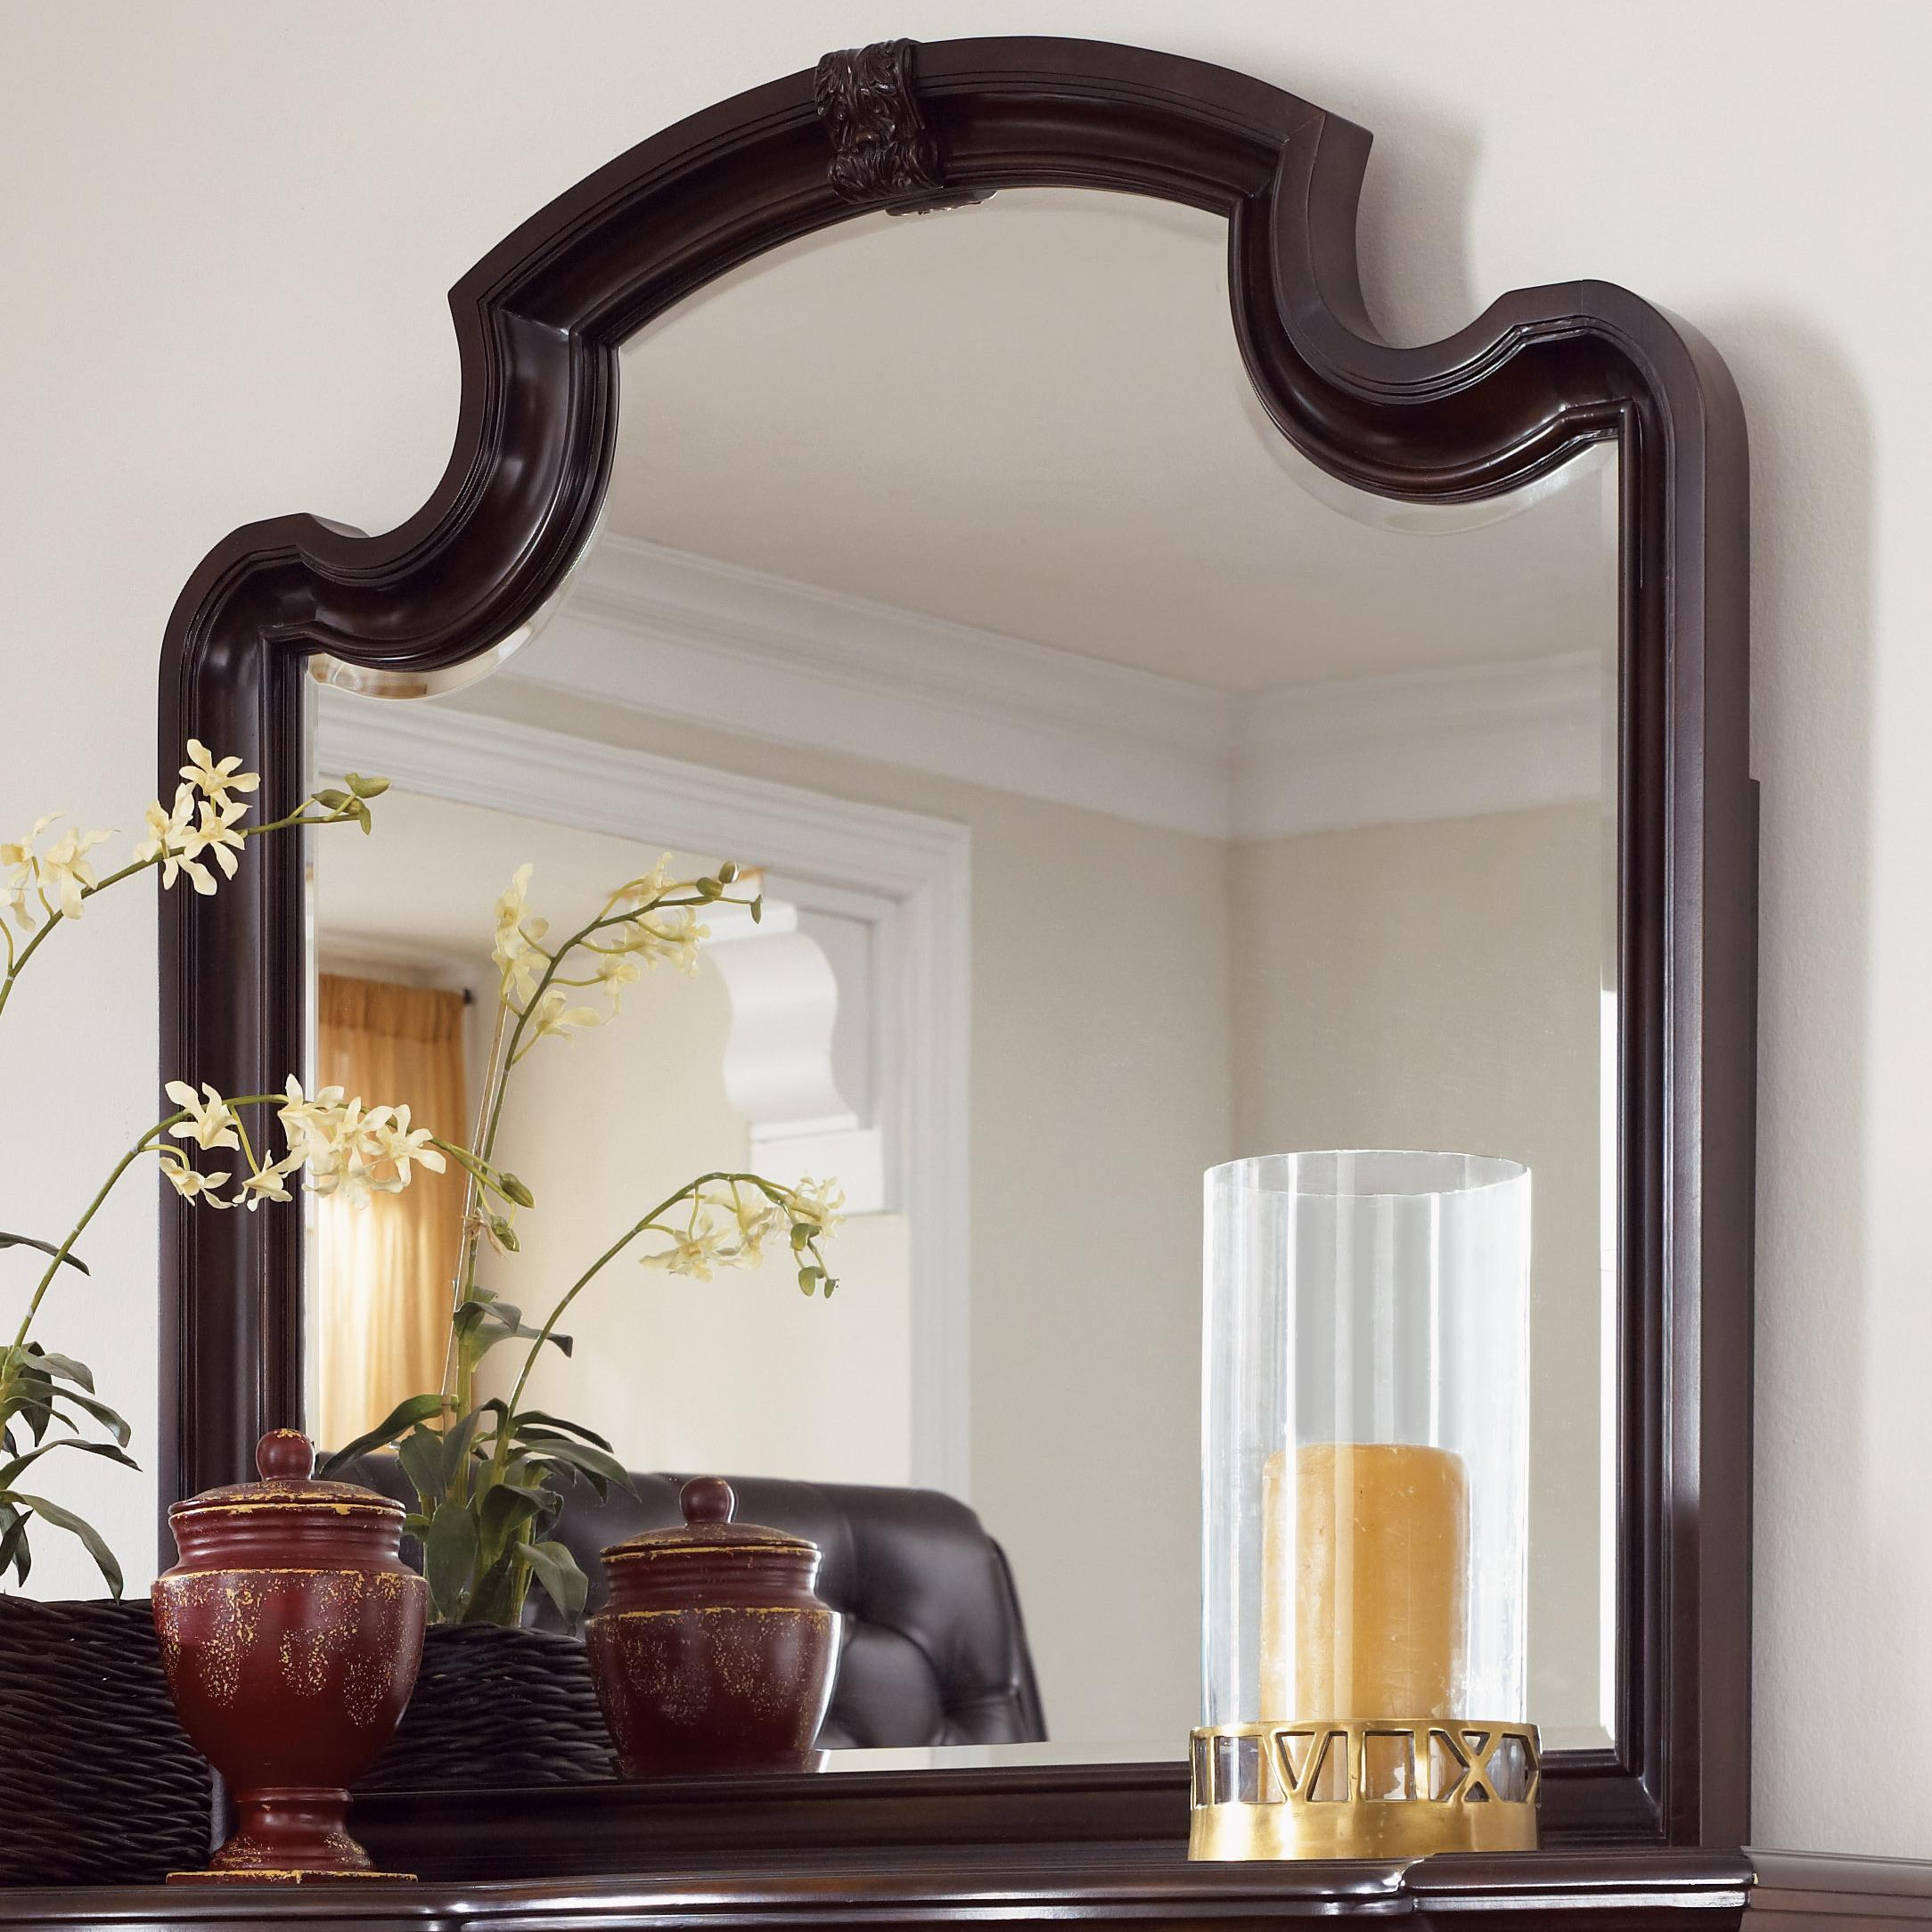 Fairmont Designs Grand Estates Landscape Mirror W Camel Arch Royal Furniture Dresser Mirrors